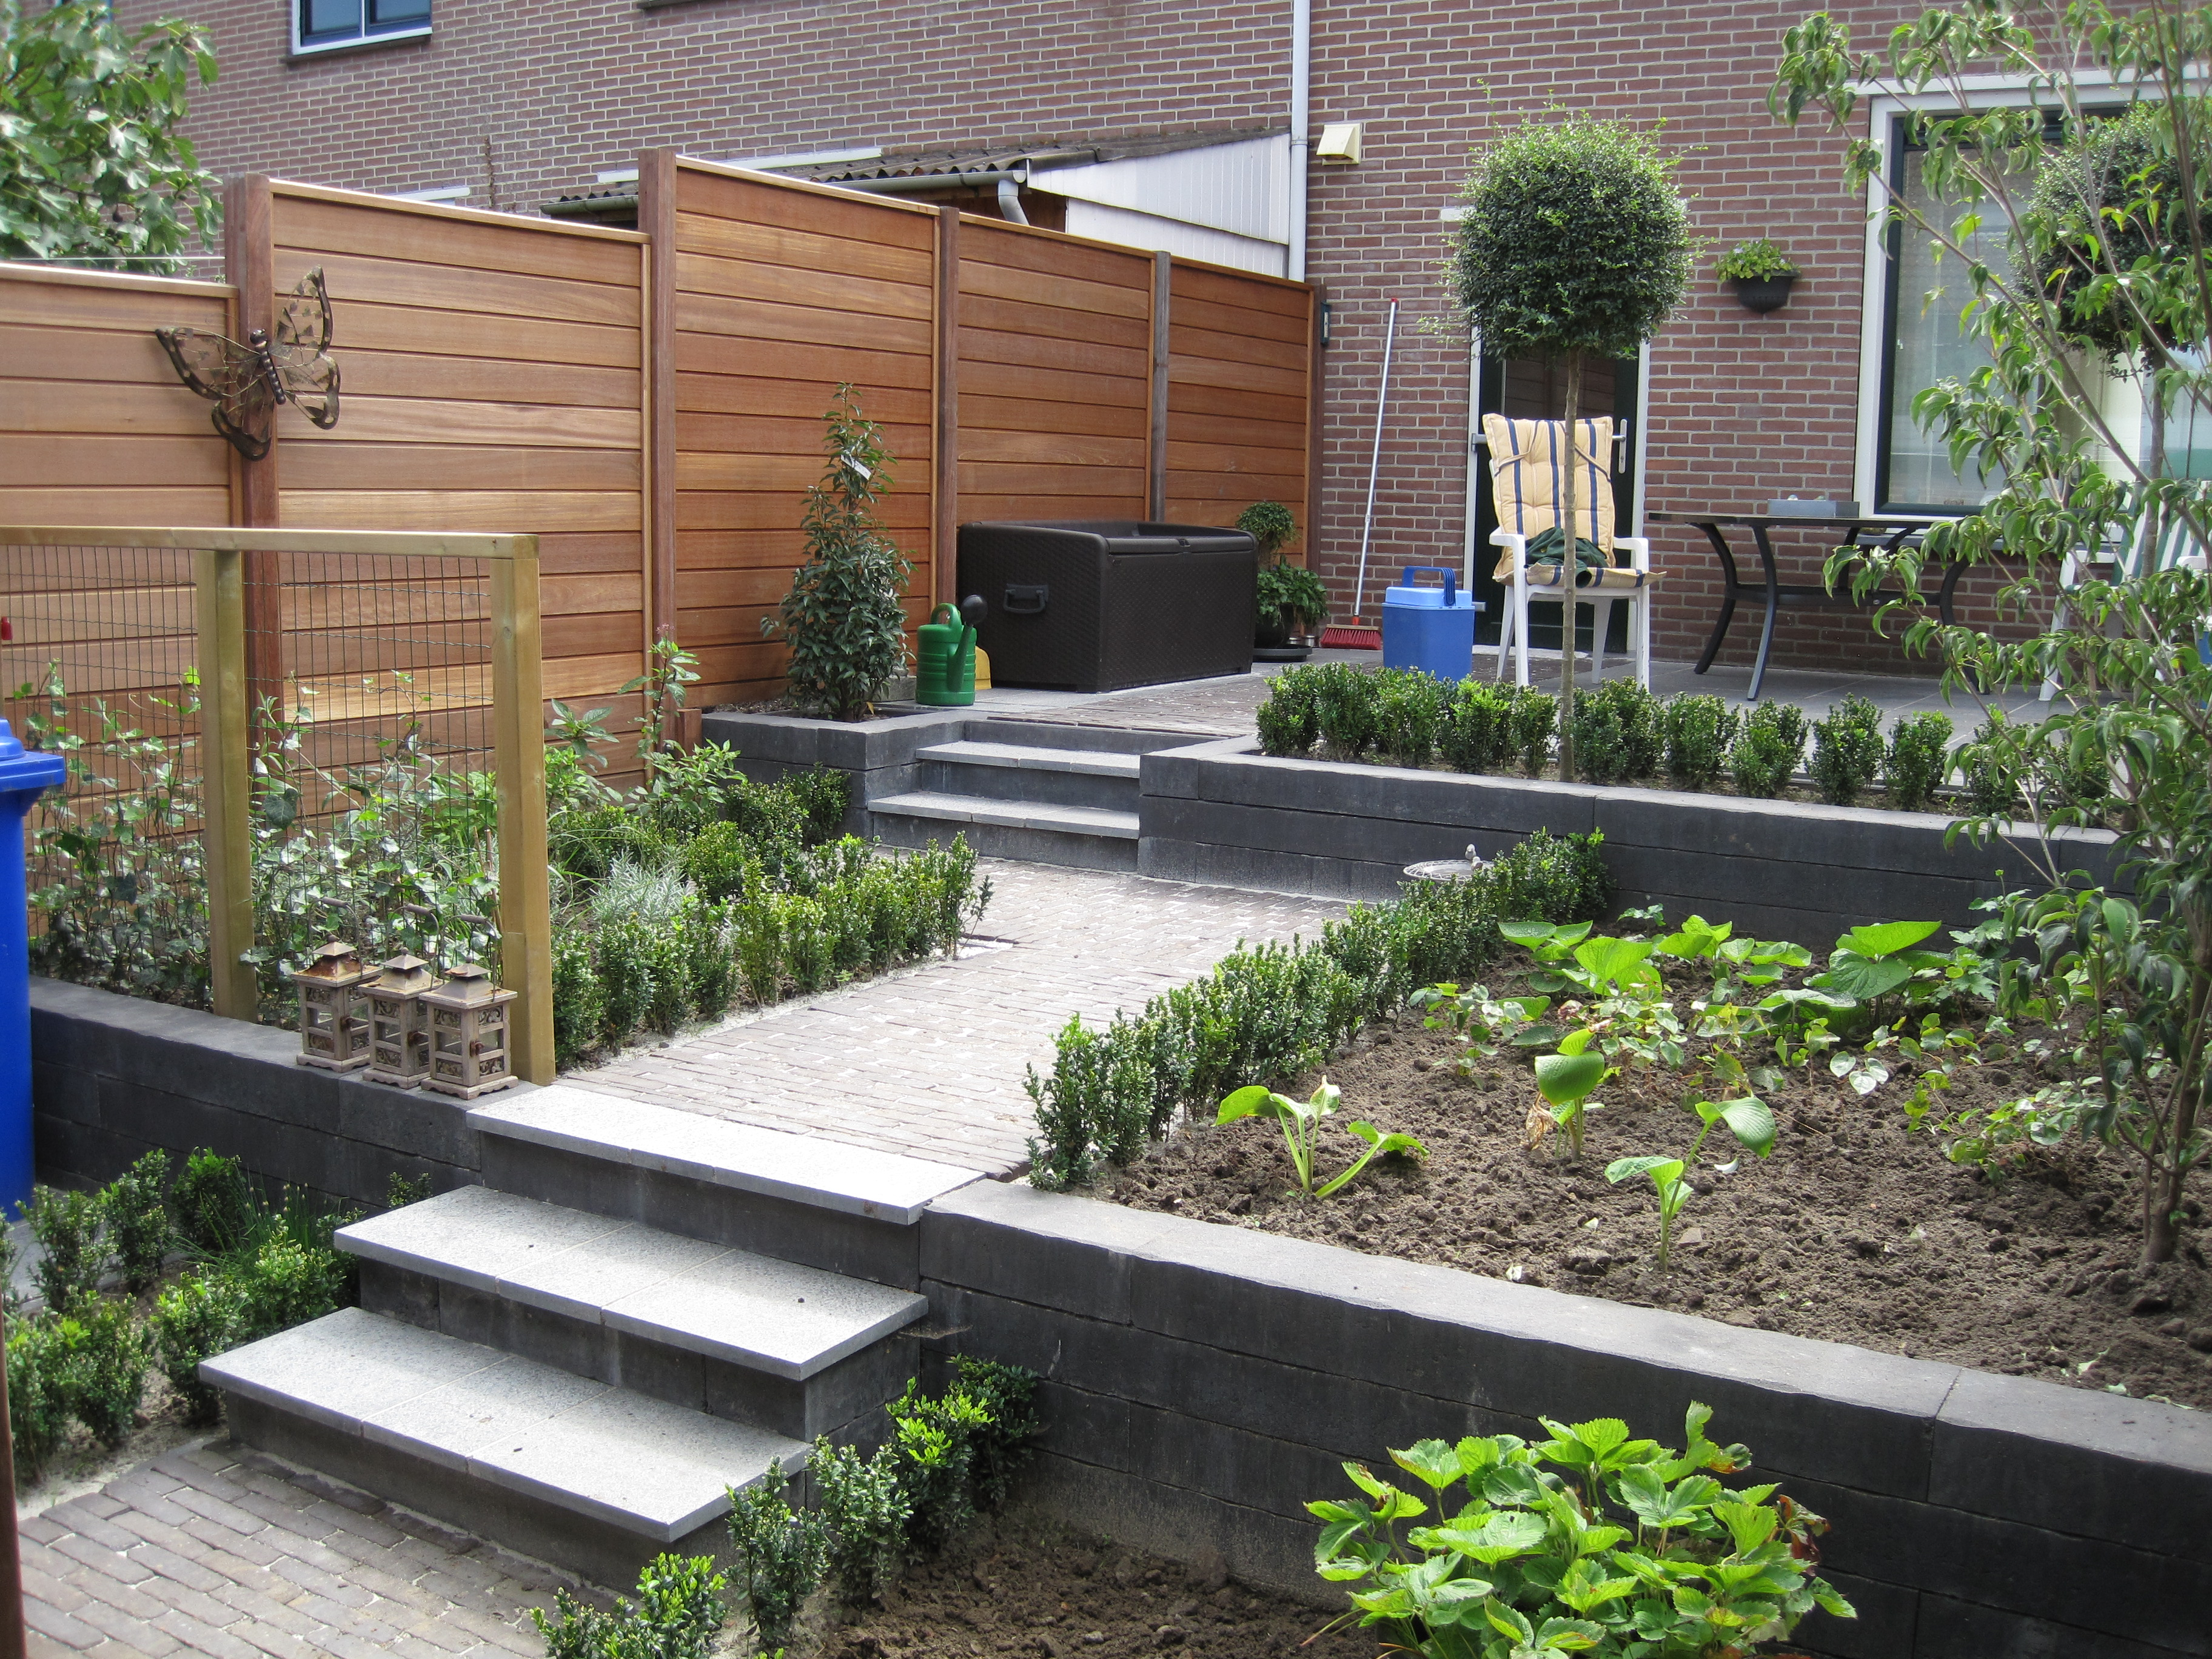 Tuin door hovenier in Friesland